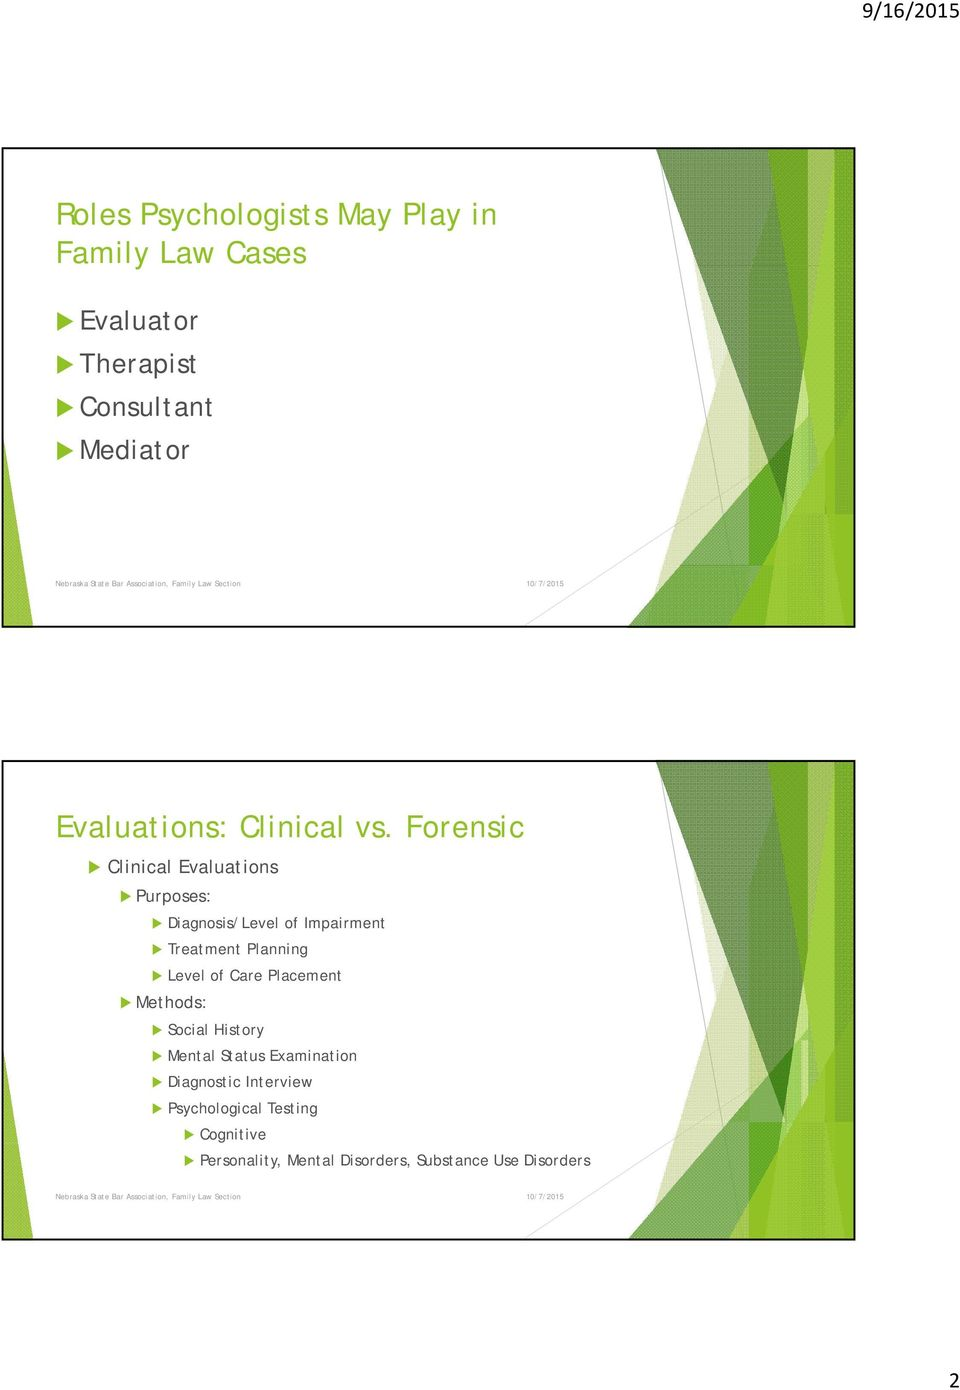 Forensic Clinical Evaluations Purposes: Diagnosis/Level of Impairment Treatment Planning Level